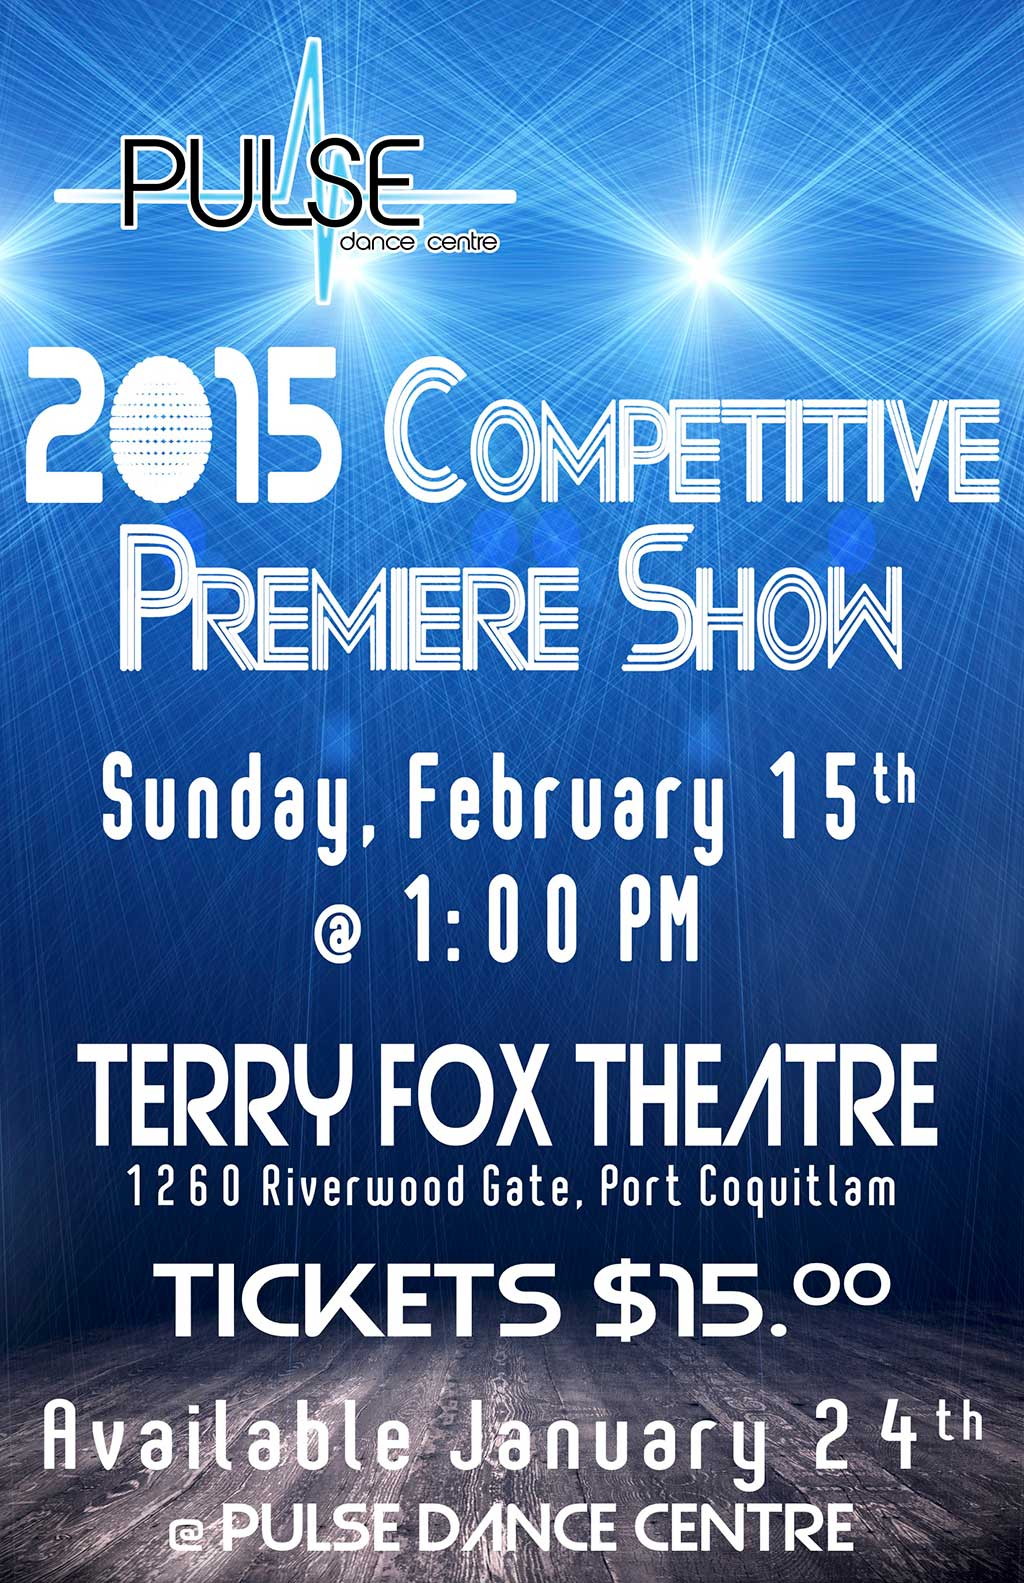 Premiere-Show-2015-Poster